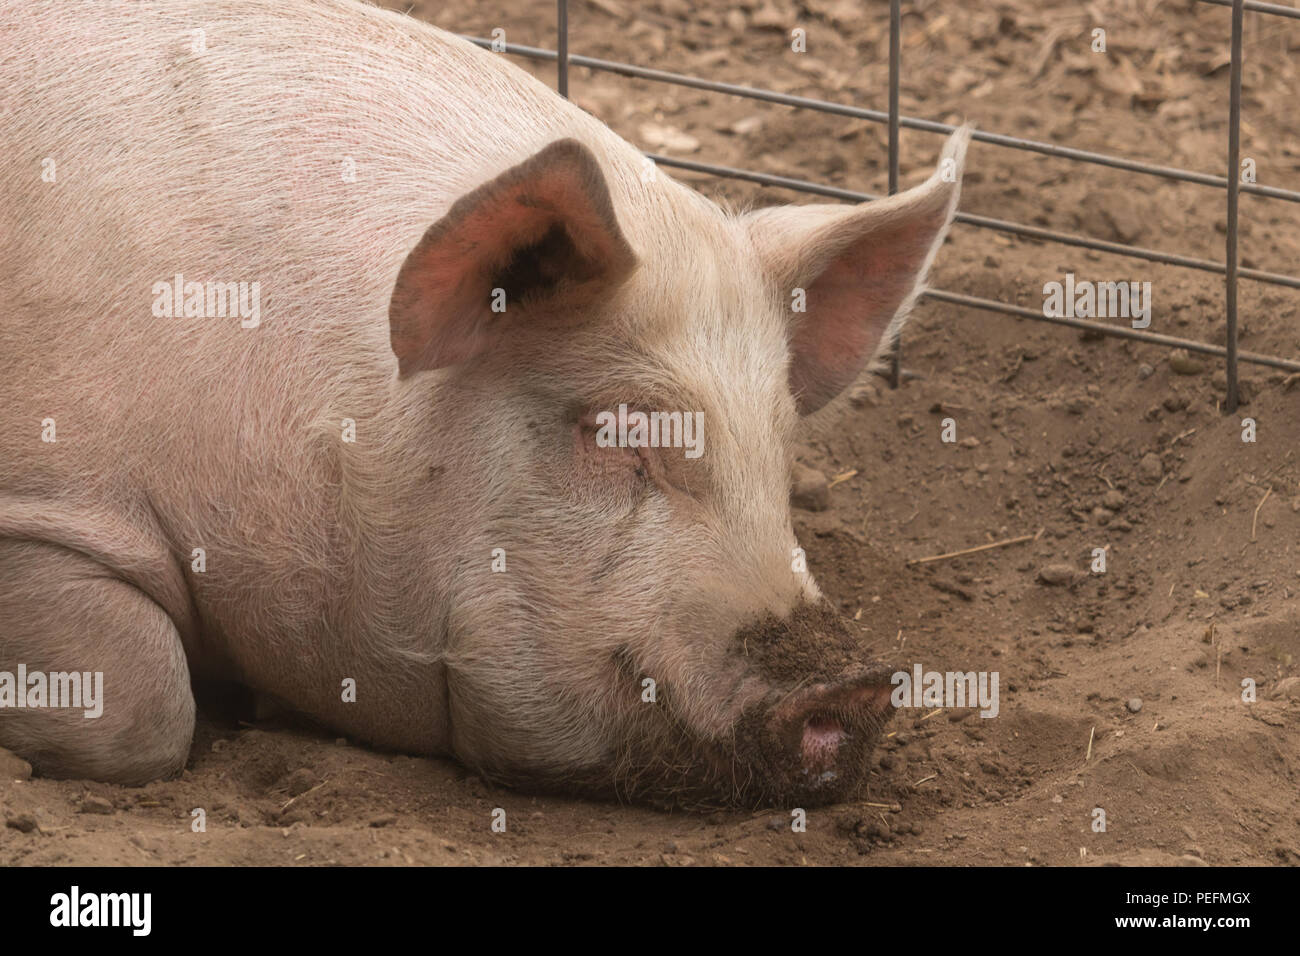 Head shot shot of spotted lazy, sleeping good natured single dirty young domestic pink laying down in his pen pig, with big ears, well cared for and h - Stock Image